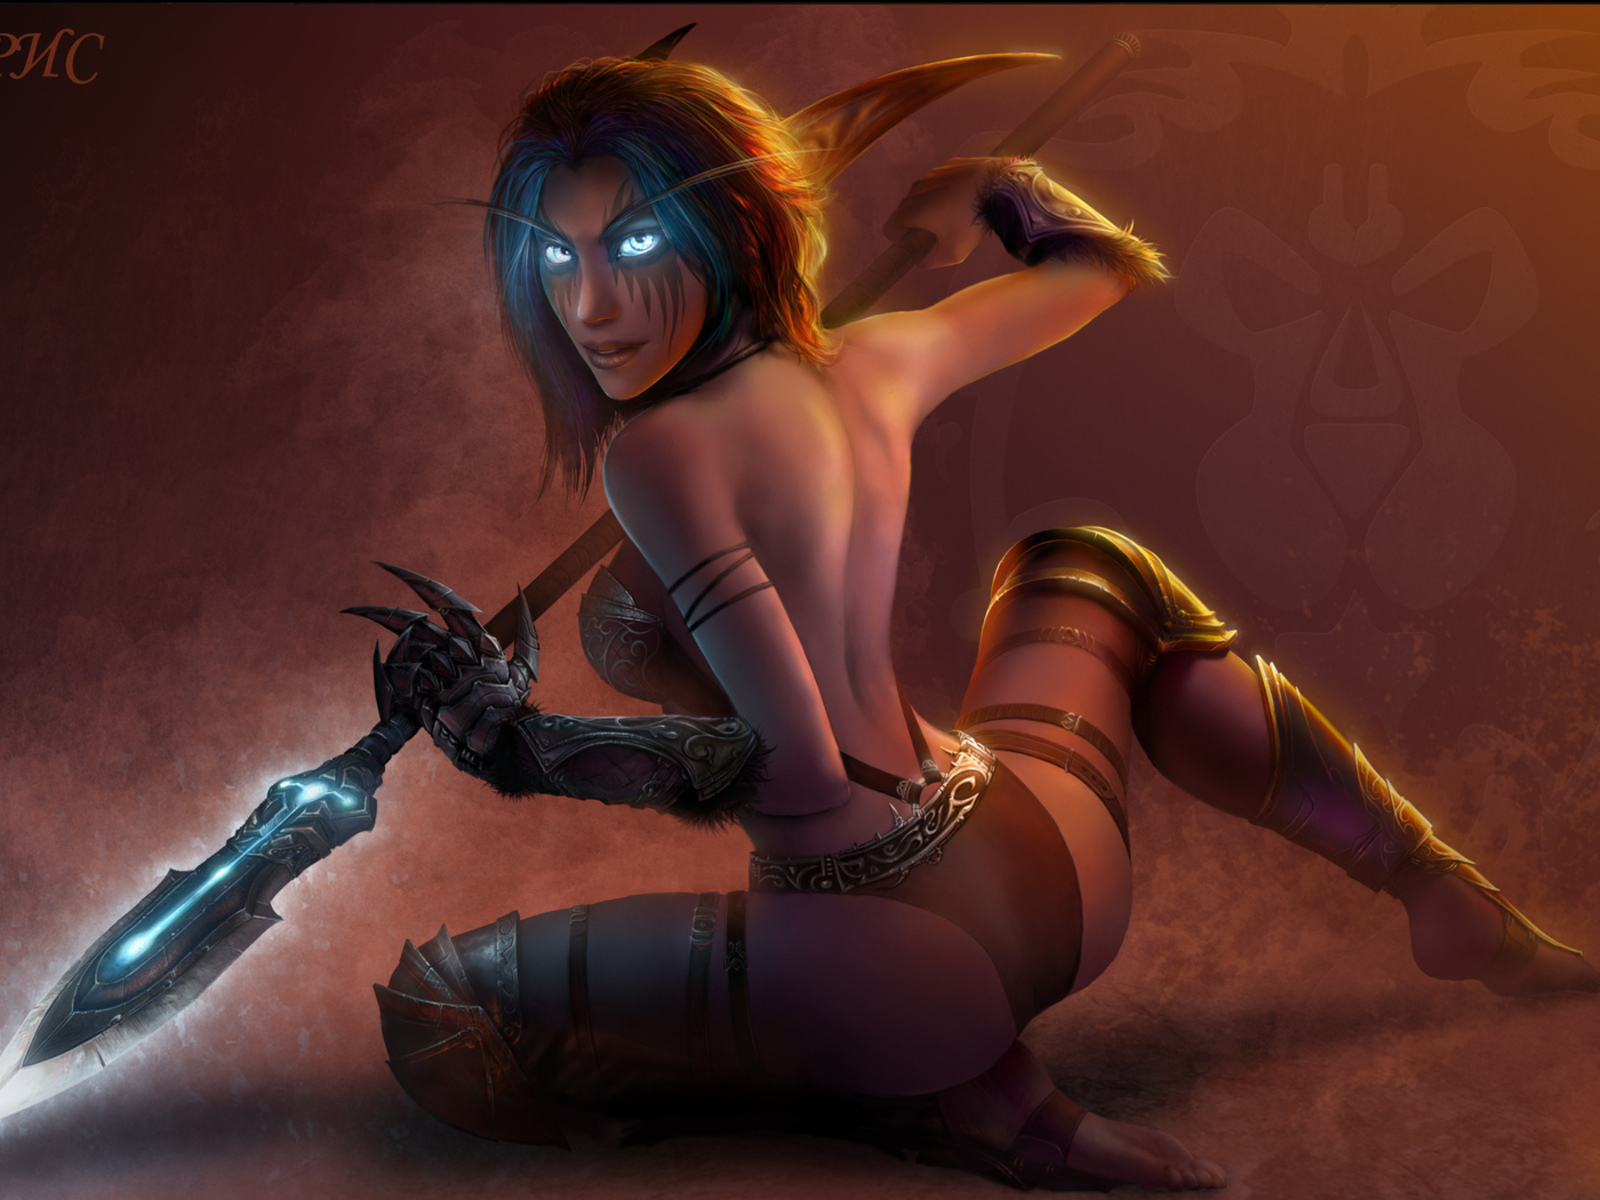 Warcraft 3 elf sex nsfw pictures